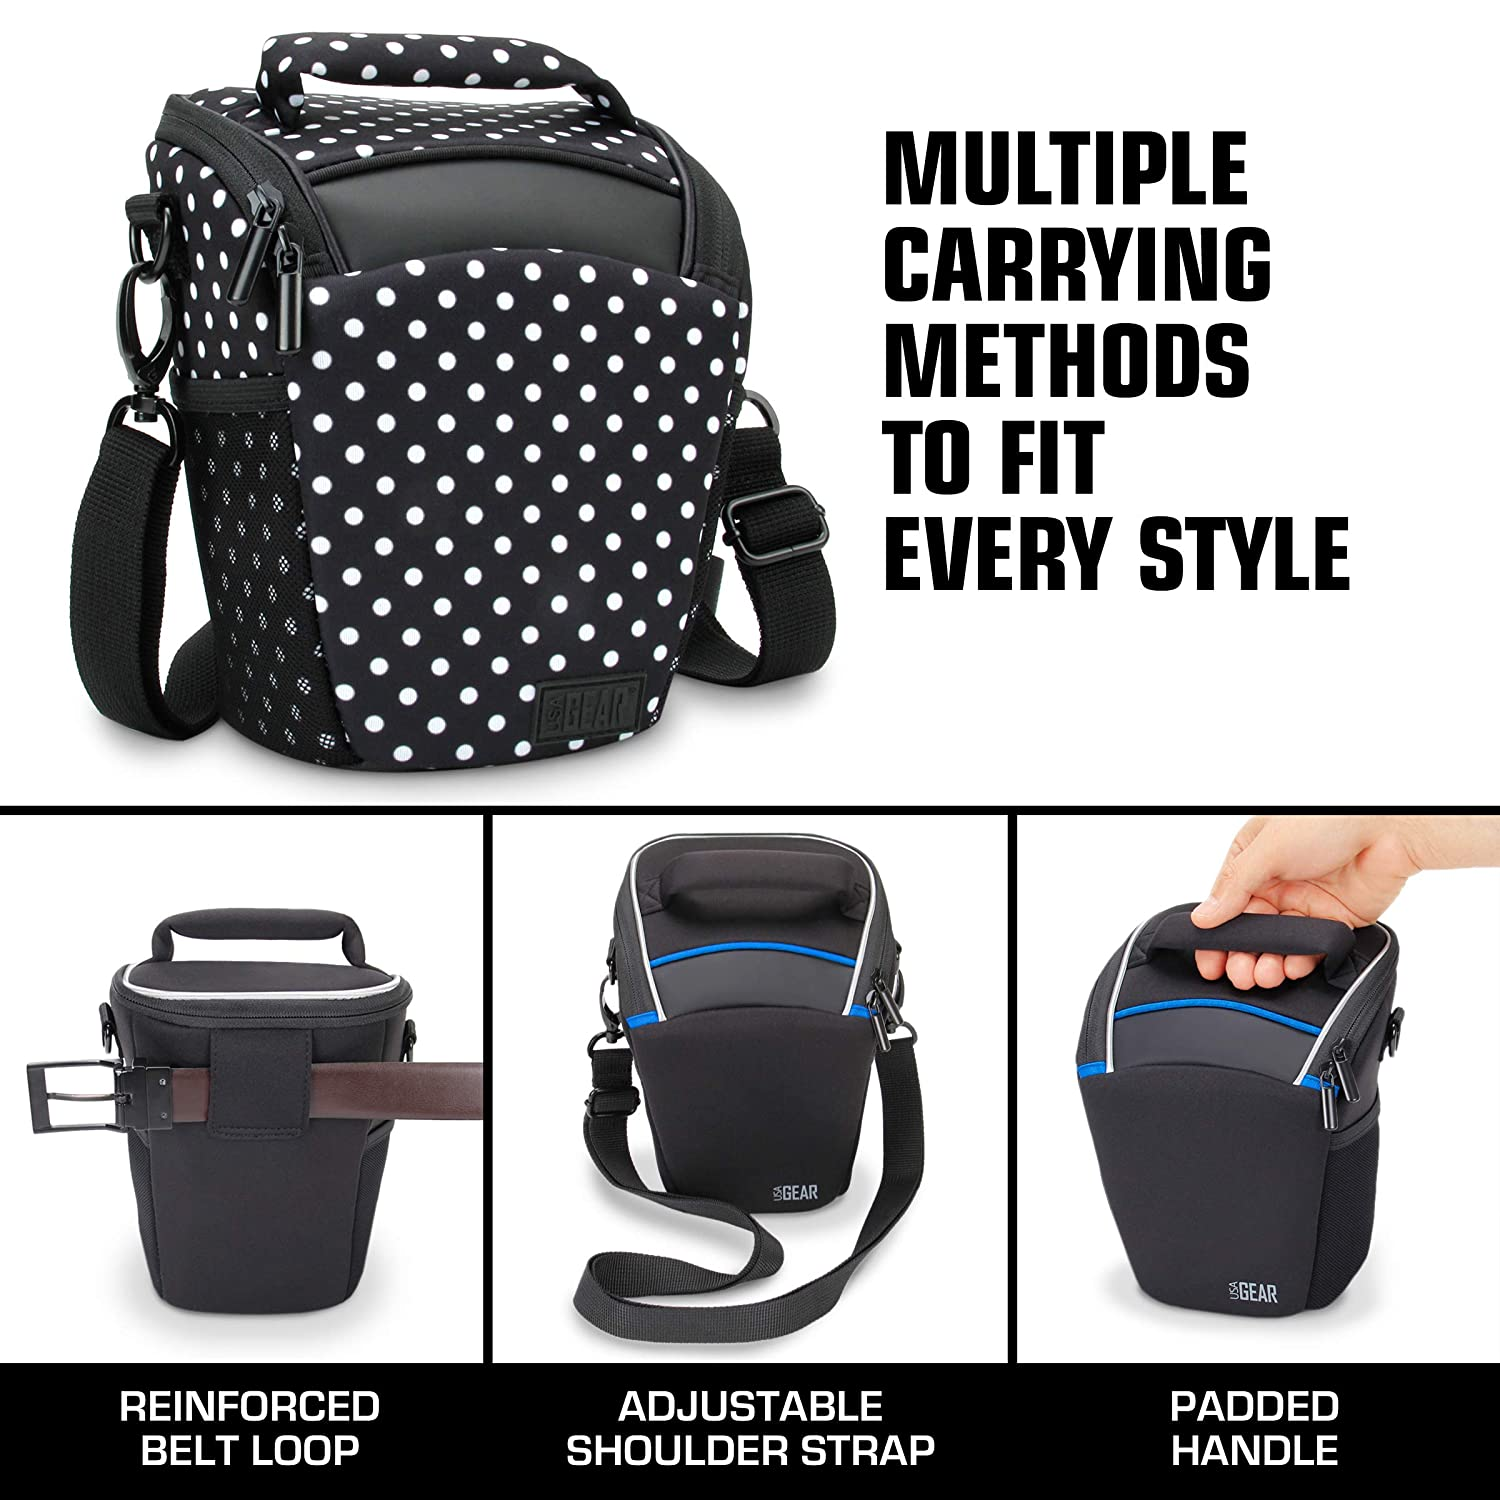 USA Gear Camera Bag Neoprene with Adjustable Shoulder Sling Shoulder Bag with Padded Handle Removable Rain Cover and Weather Resistant Bottom Compatible with Canon Nikon Sony etc Polka Dot